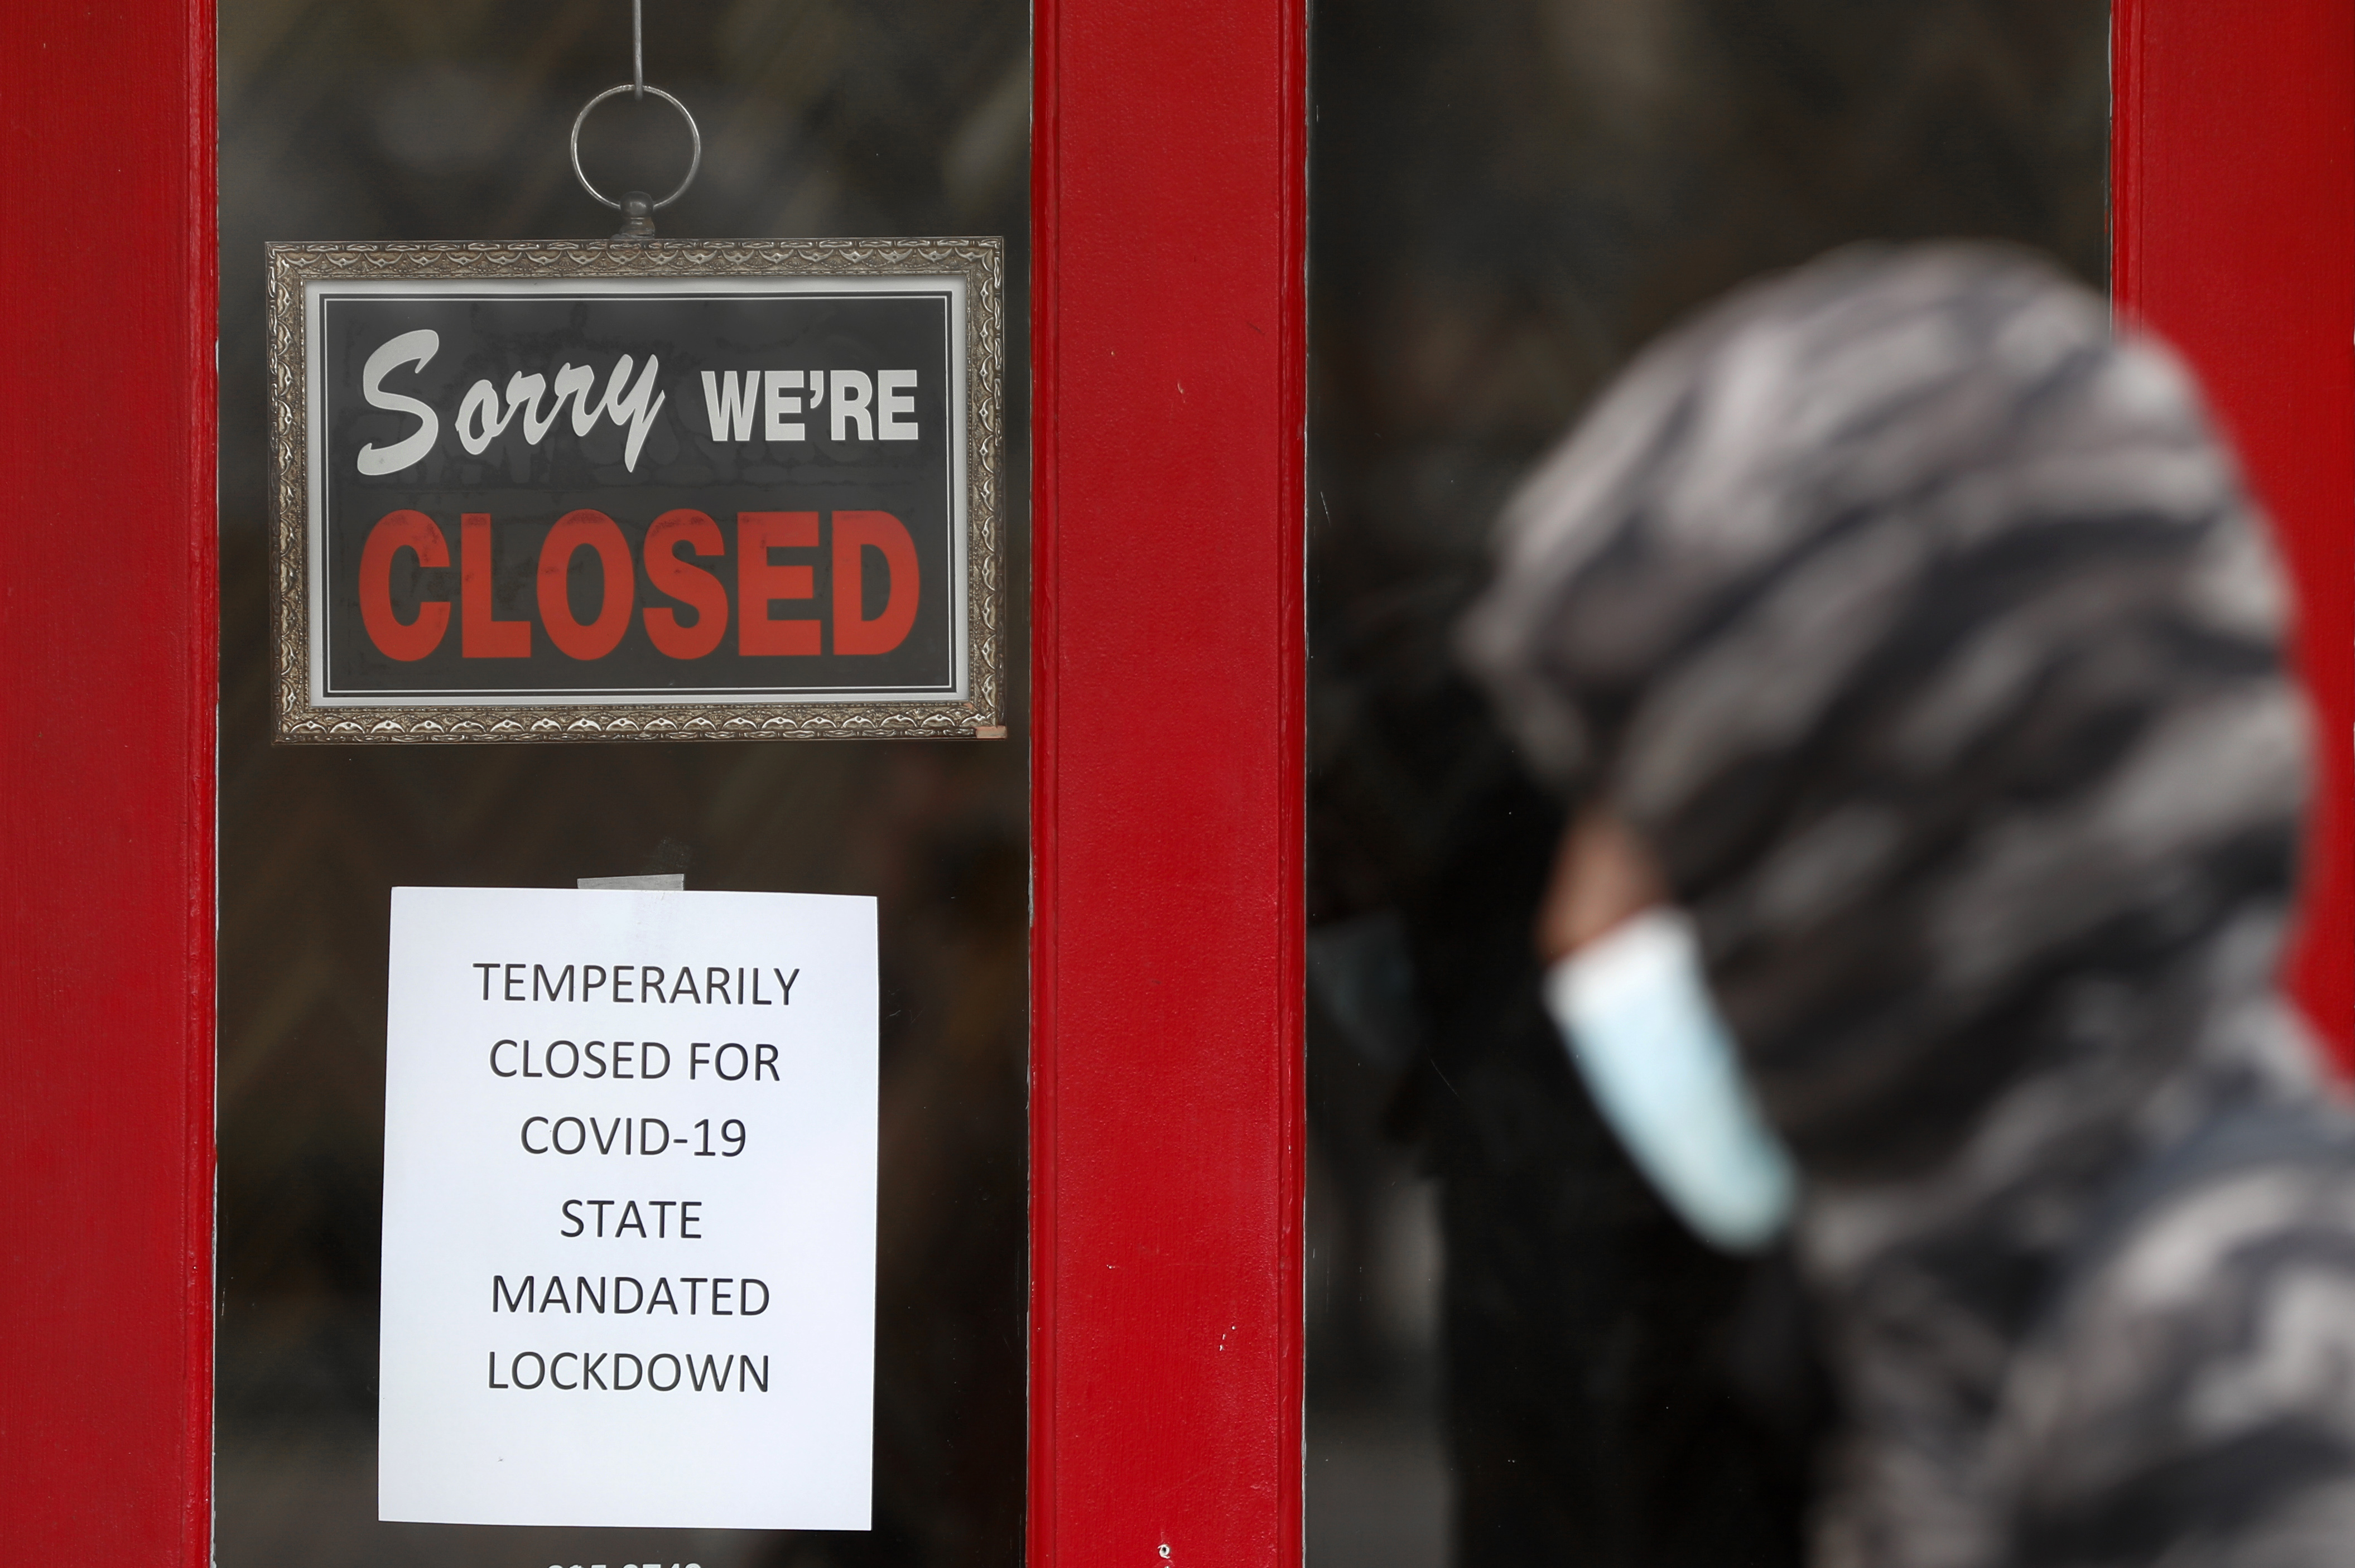 A pedestrian walks by The Framing Gallery, closed due to the Covid-19 pandemic, in Grosse Pointe, Michigan, on May 7.